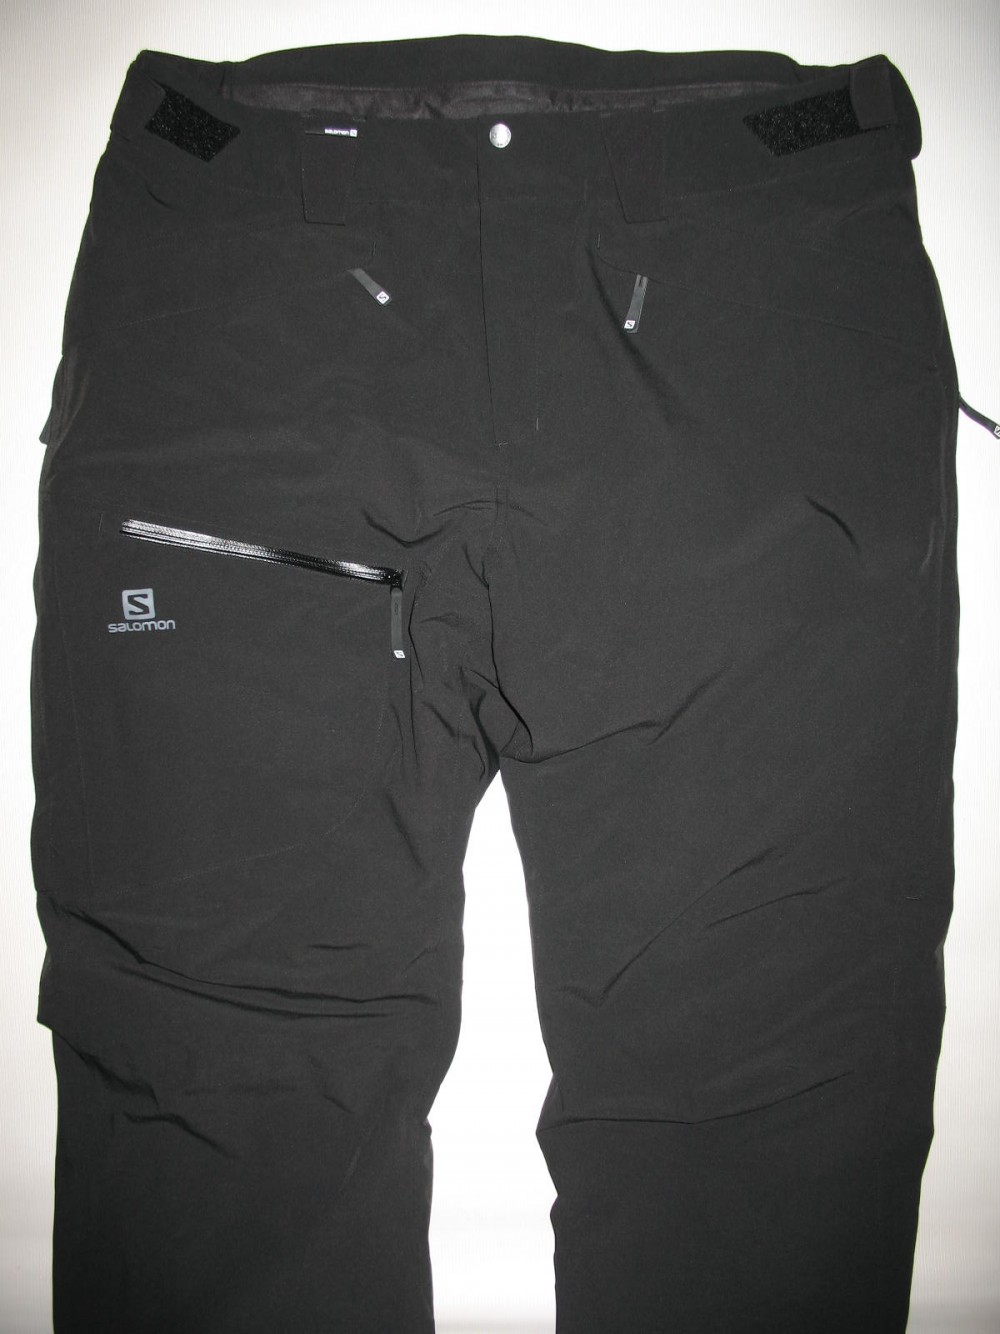 Штаны SALOMON chill out bib pant (размер XXL) - 6